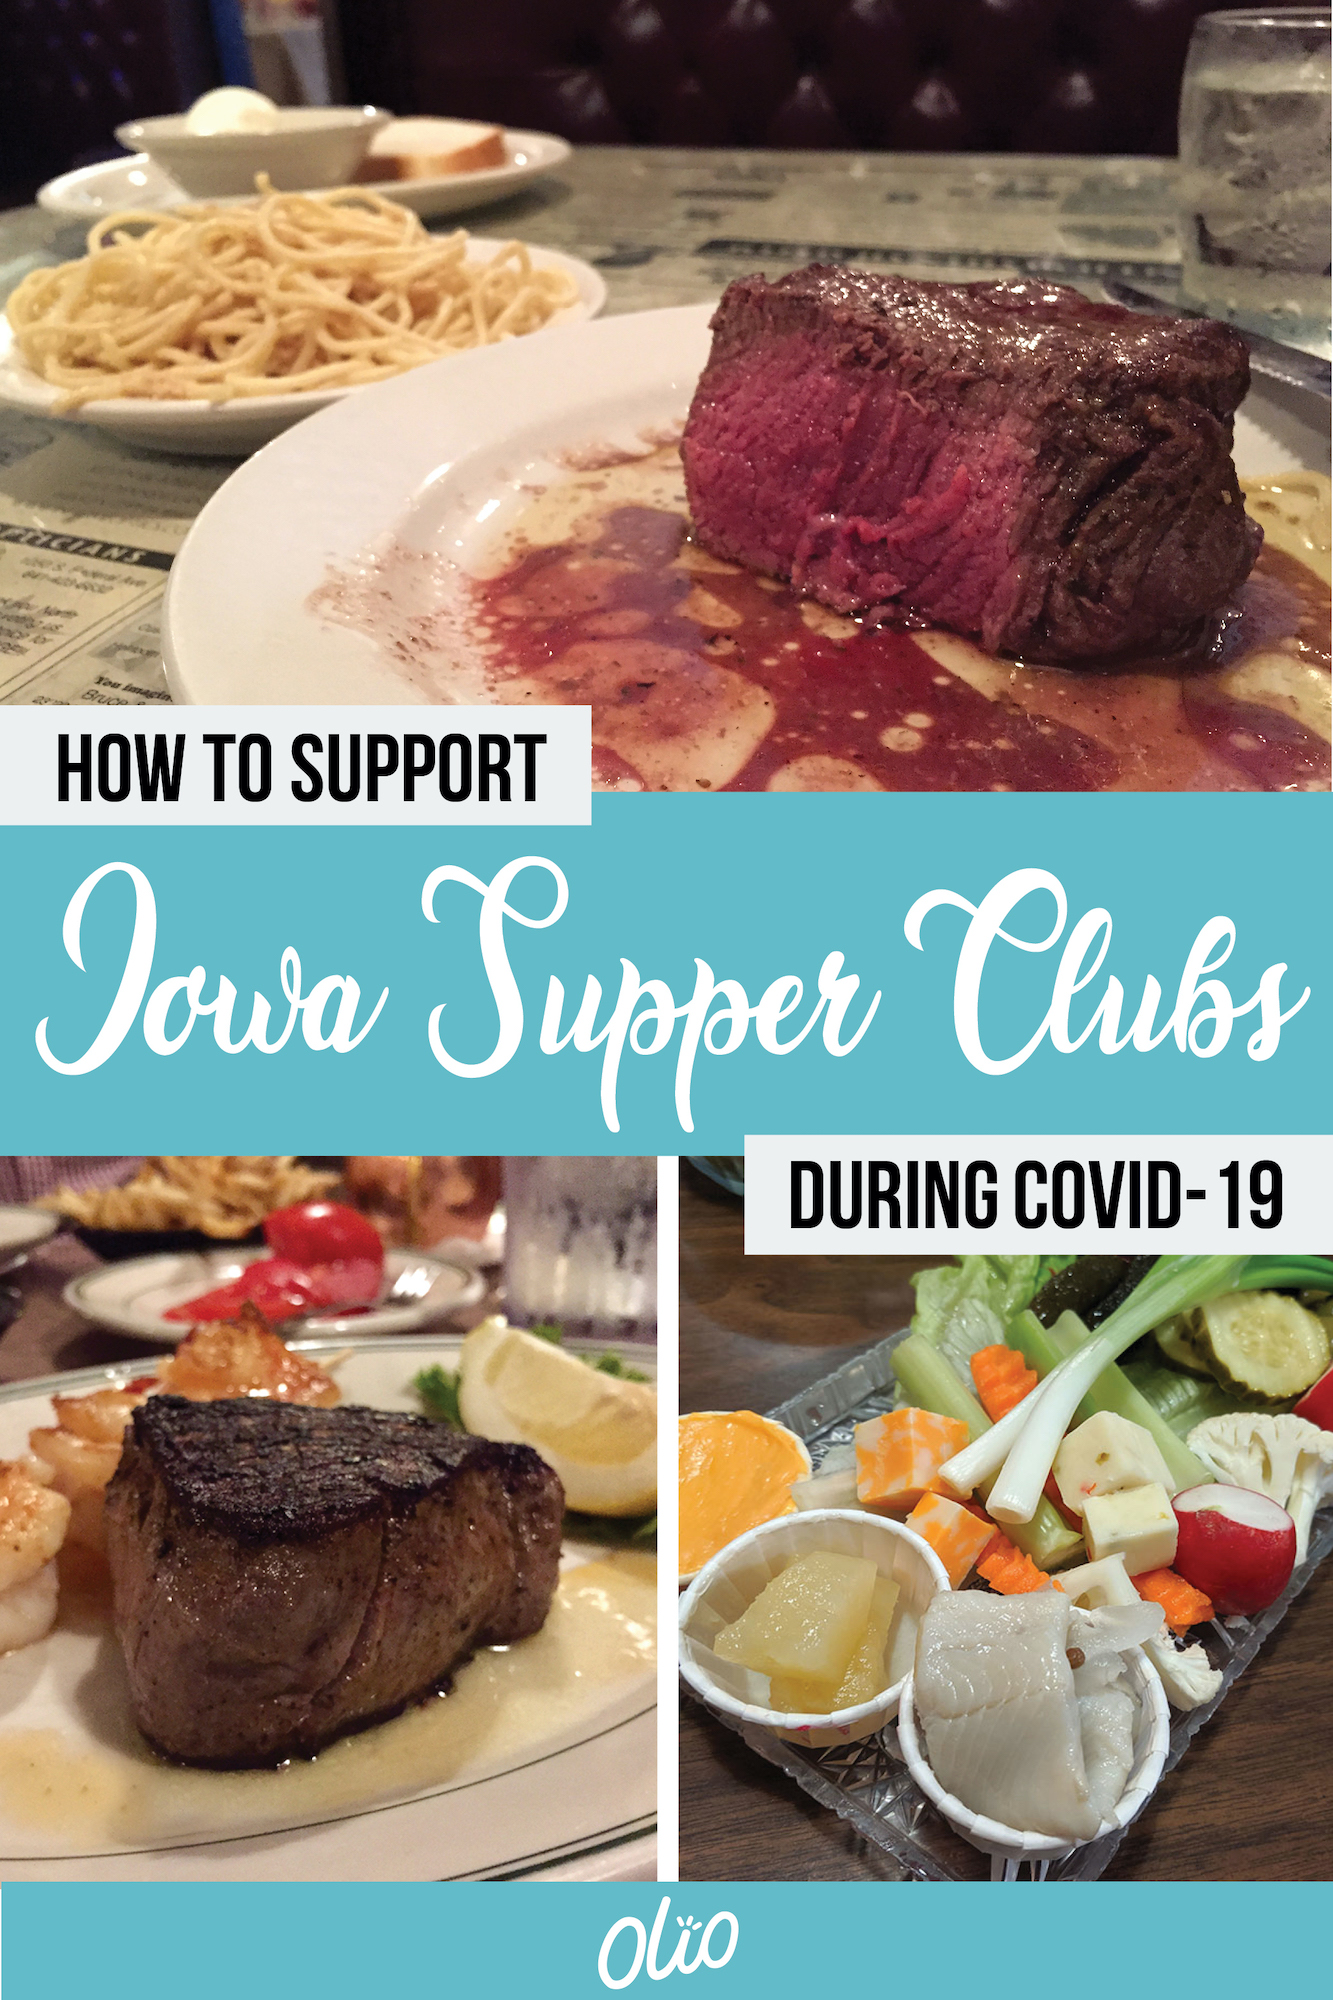 Local restaurants need your support now more than ever! If you're looking for a way to safely support Iowa supper clubs during the COVID-19 pandemic, this post includes a complete list of supper clubs, their current hours and up-to-date practices to keep their staff and diners safe. #Iowa #SupperClub #Steakhouse